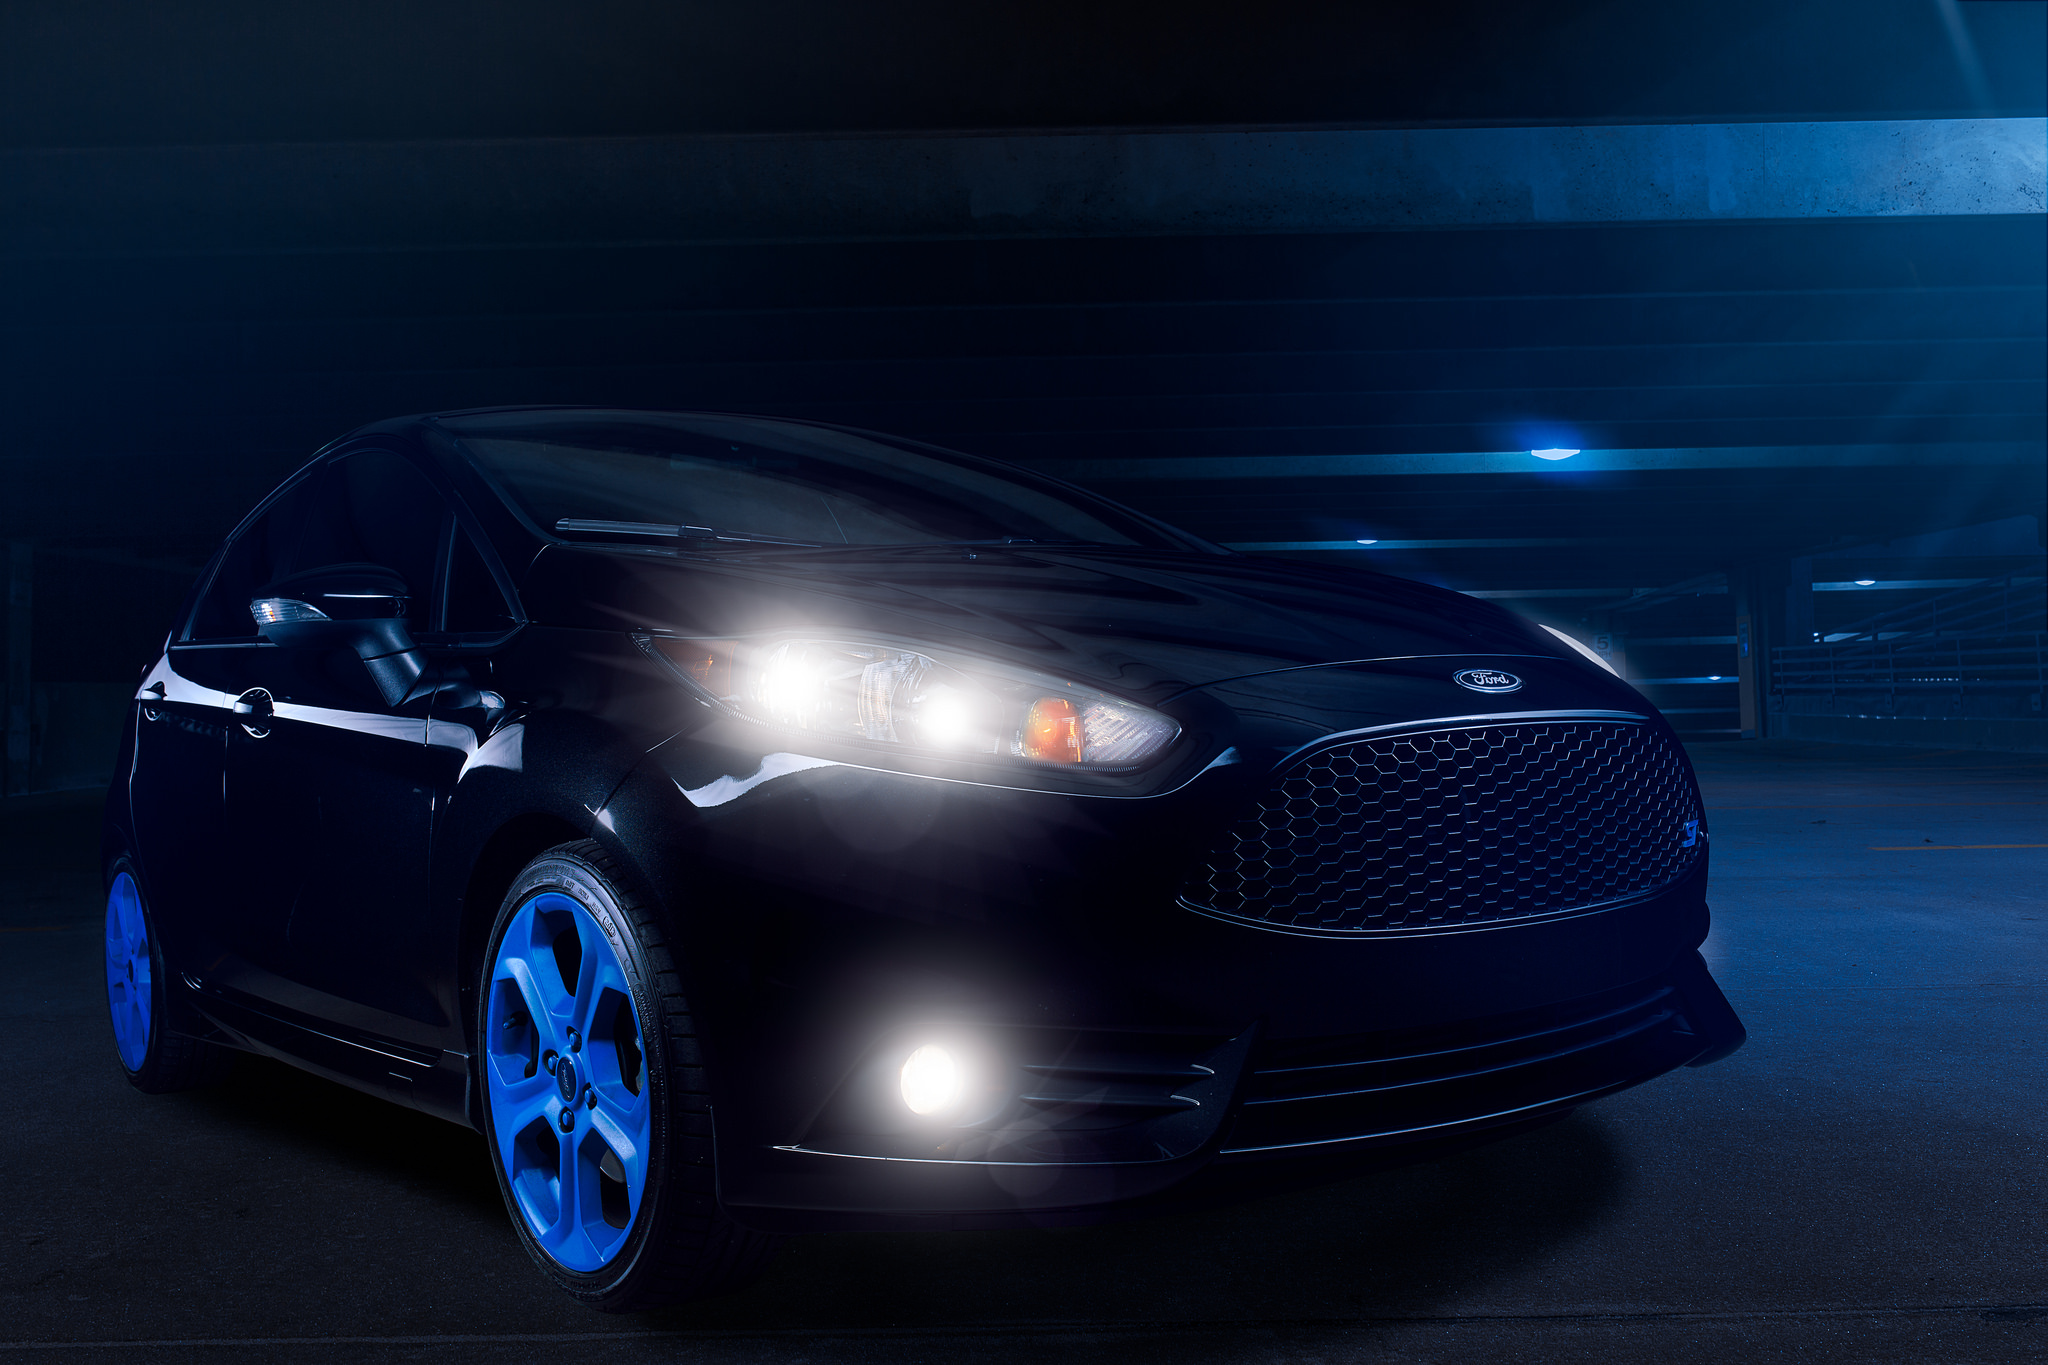 Ford Fiesta ST Automotive Photography